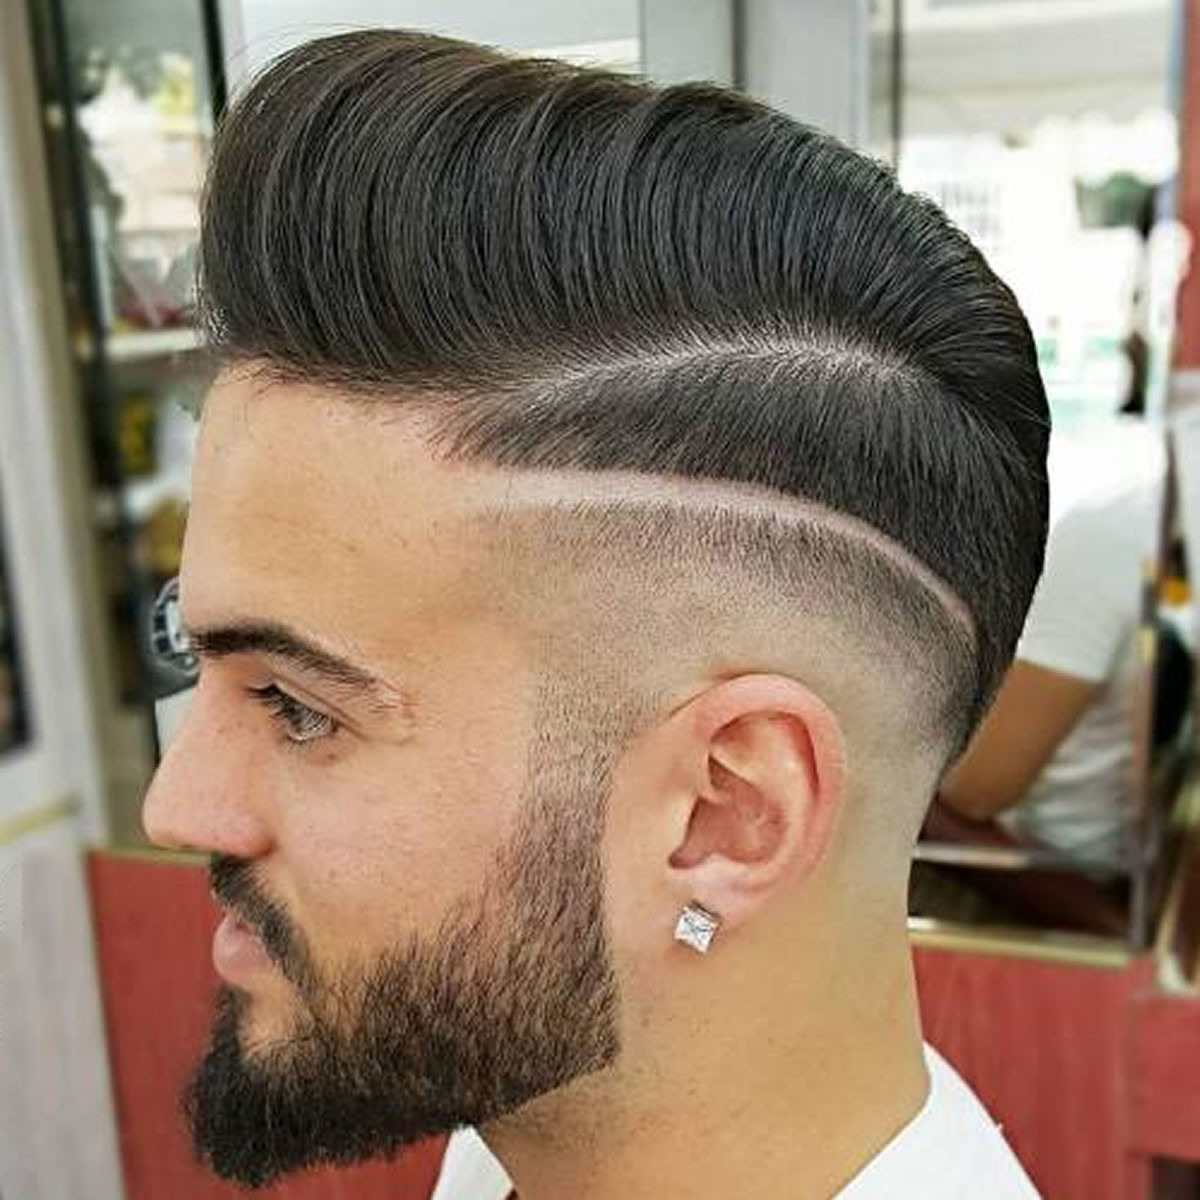 Best ideas about Boys Hairstyle . Save or Pin 2018 Short Haircuts for Men – 17 Great Short Hair Ideas Now.